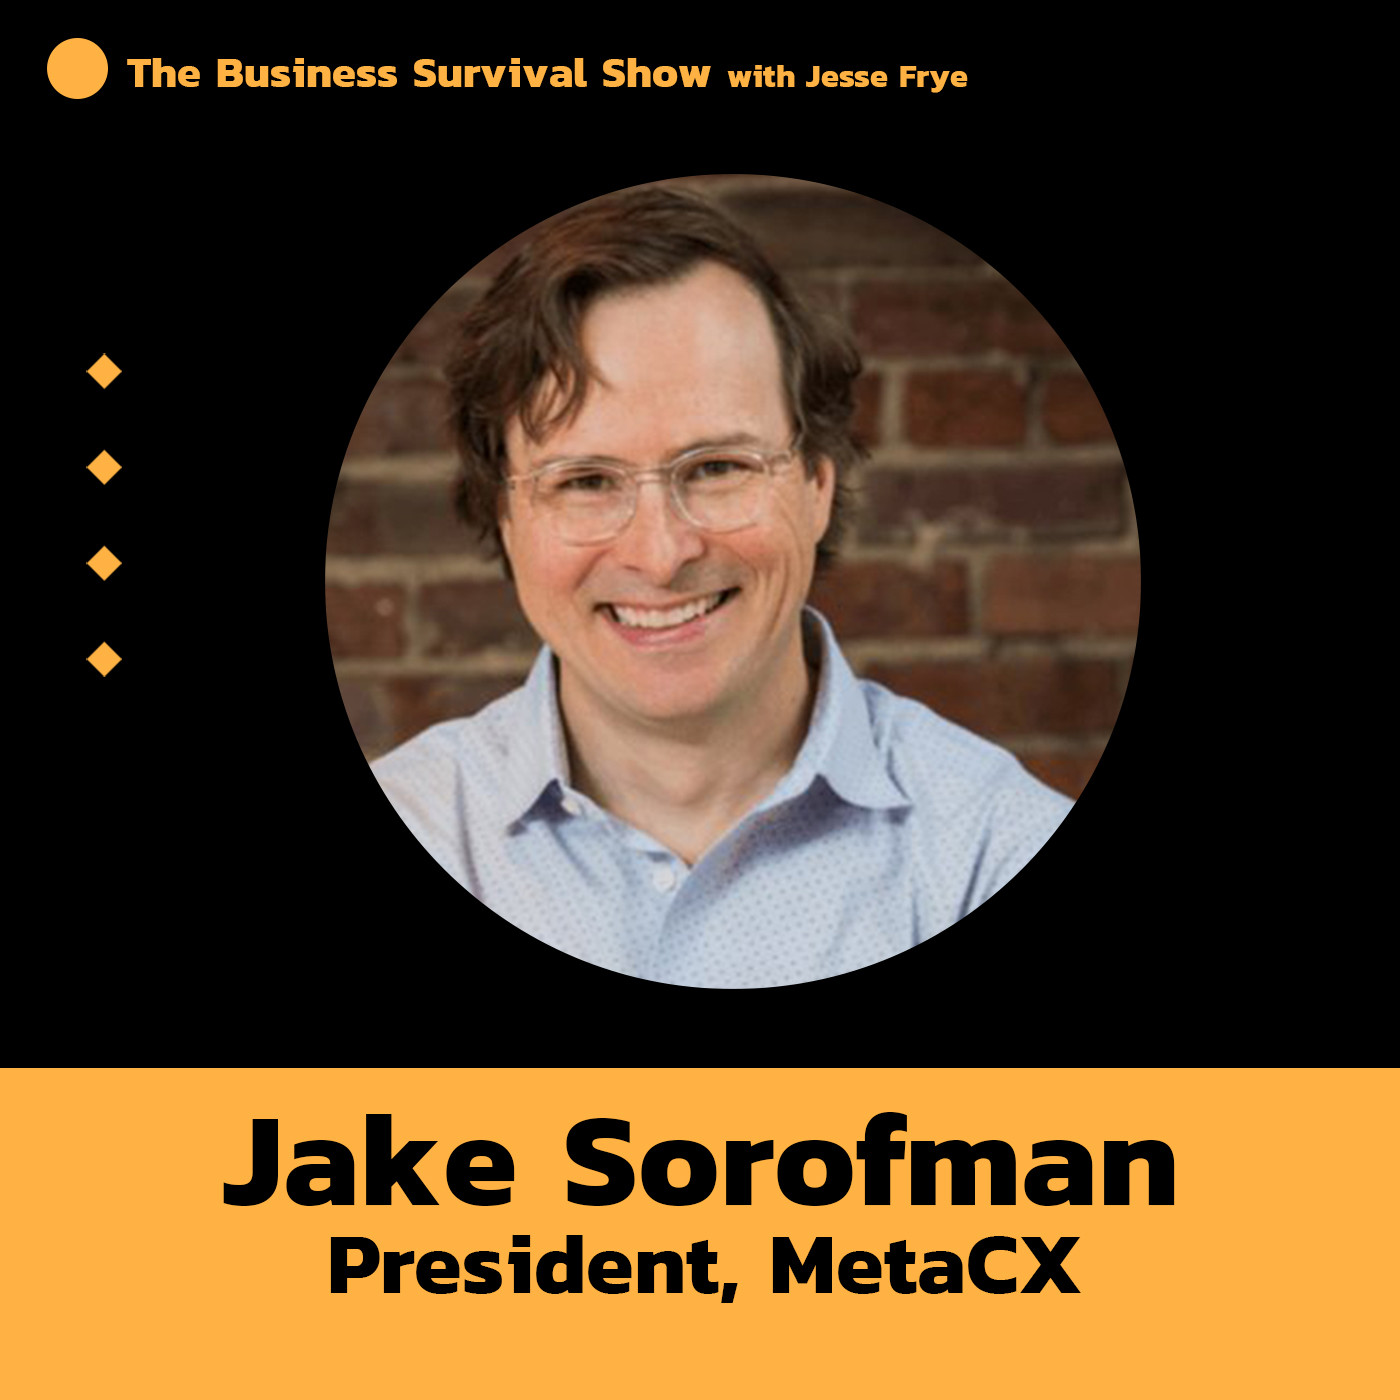 MetaCX President, Jake Sorofman talks about how it's a heck of a lot easier to be differentiated than different!